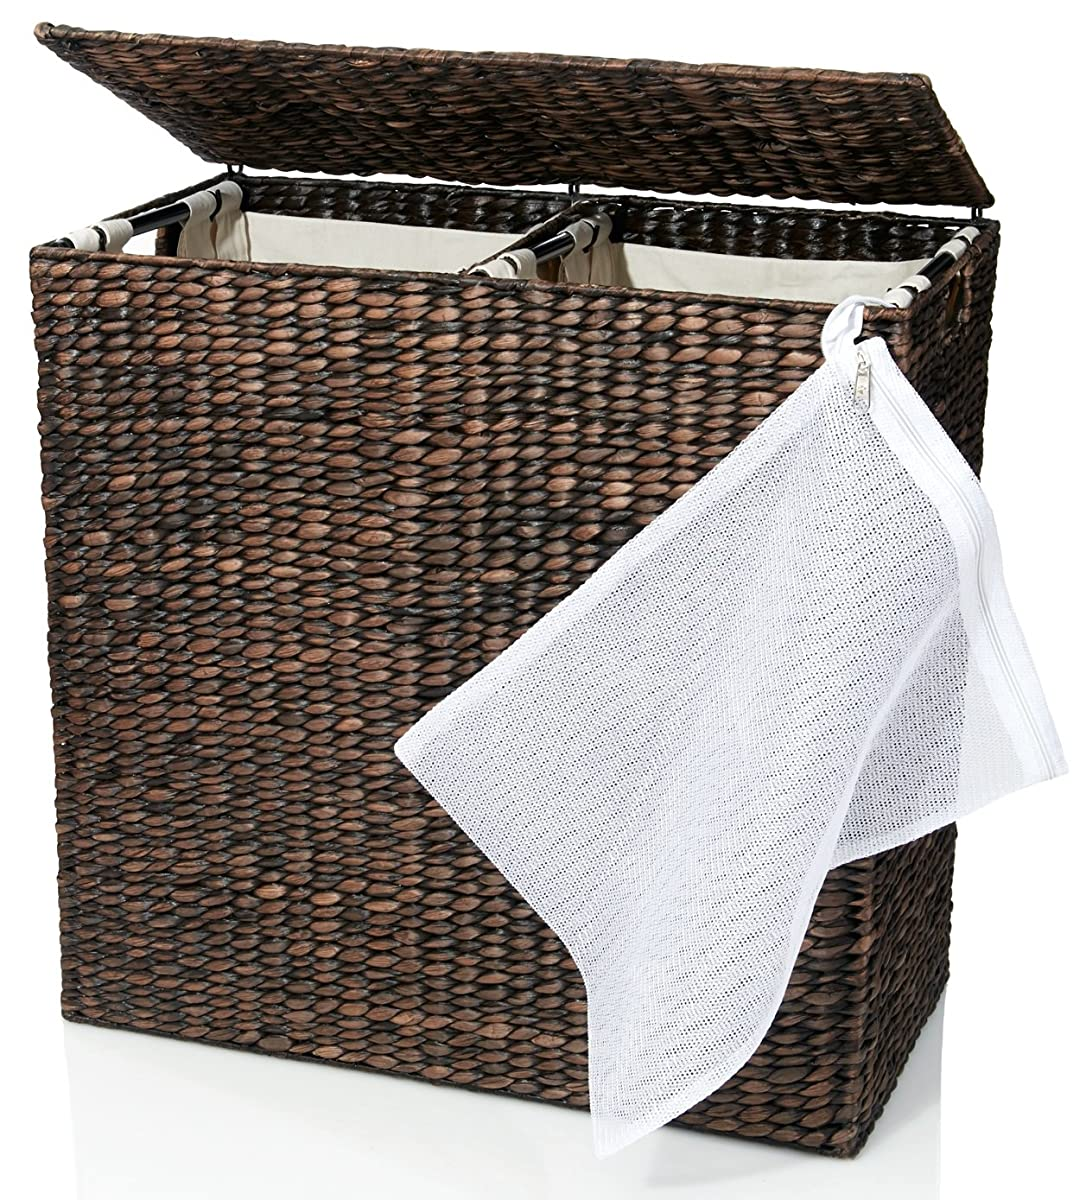 Designer Wicker Laundry Hamper With Divided Interior And Laundry Basket Bags Espresso Water